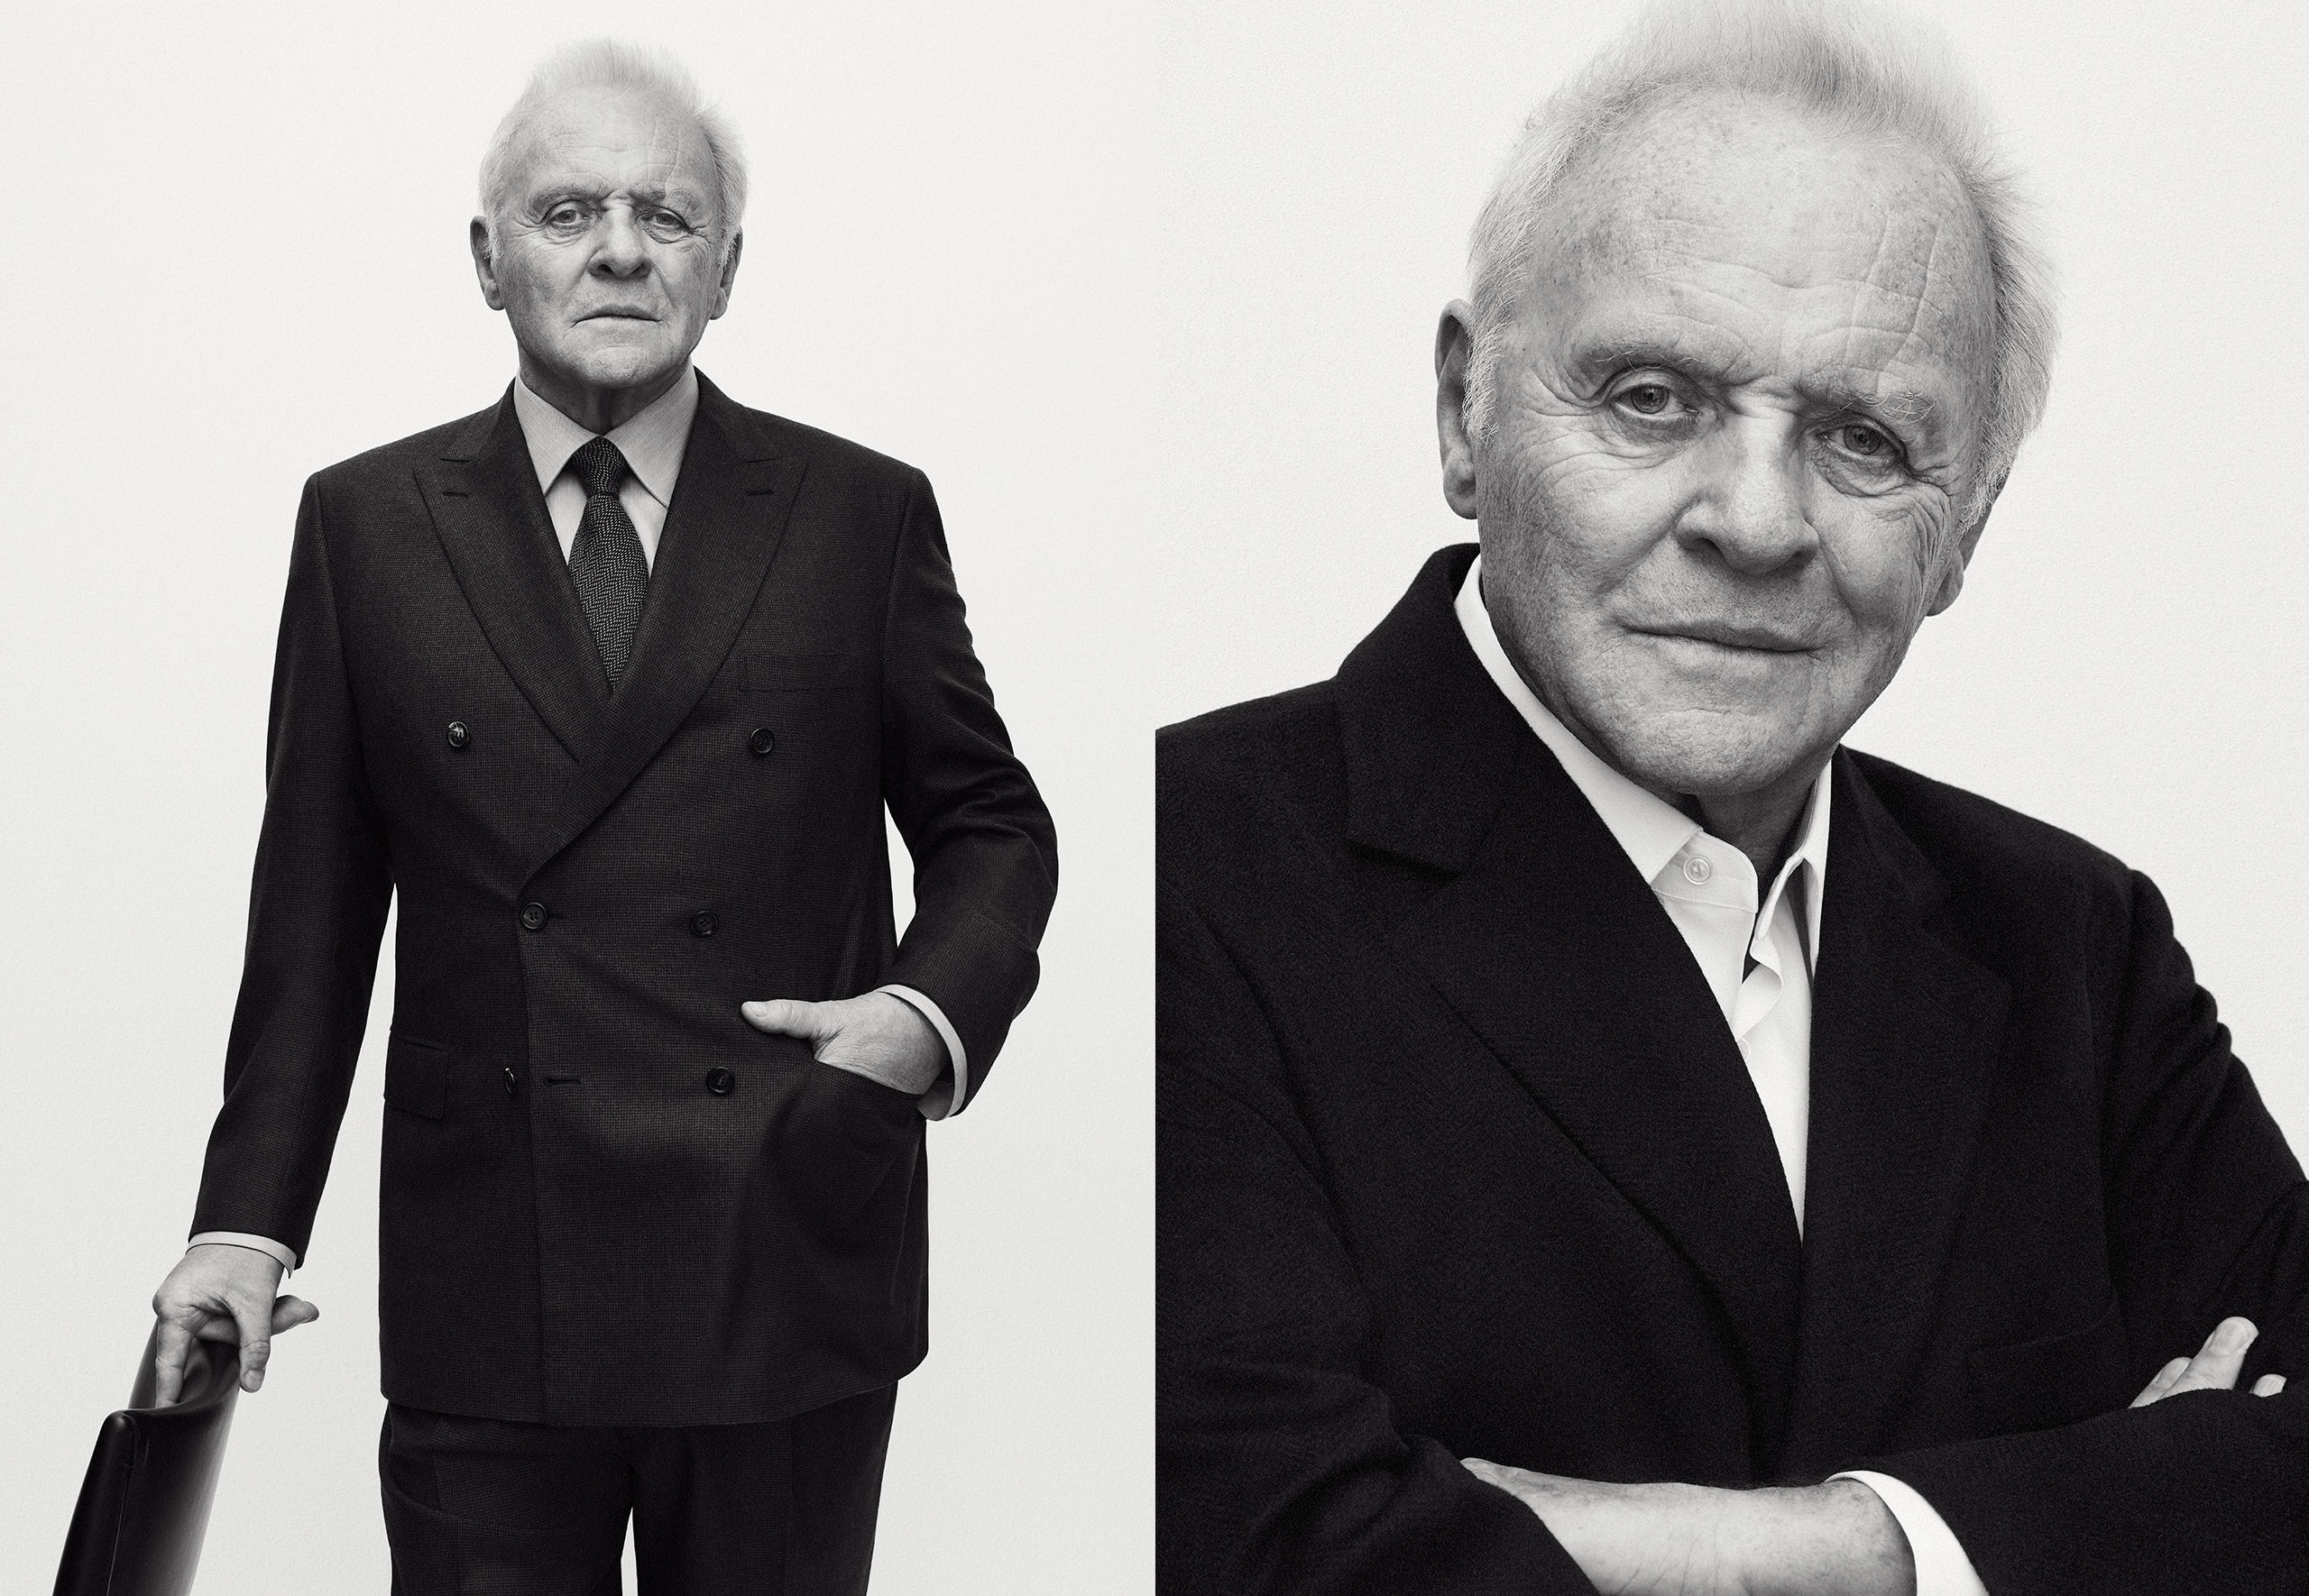 MODA: BRIONI – SIR ANTHONY HOPKINS PARA BRIONI